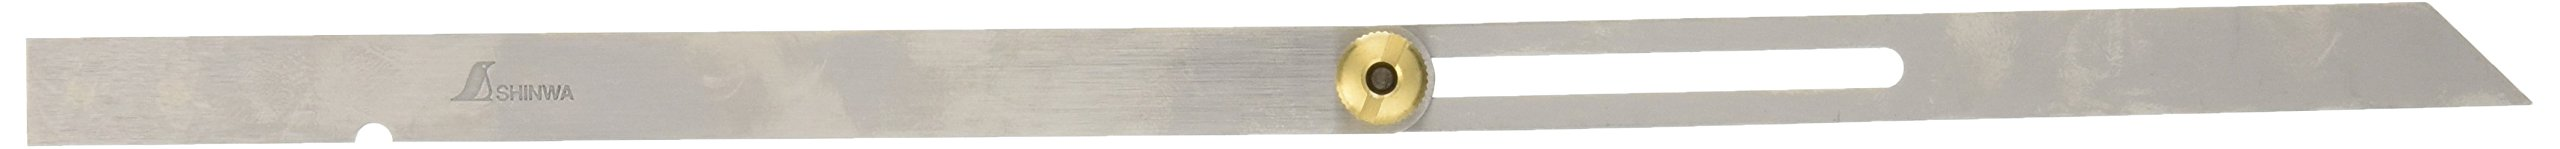 Shinwa 62588 Japanese 6''/15 cm Stainless Steel Sliding Bevel Gauge